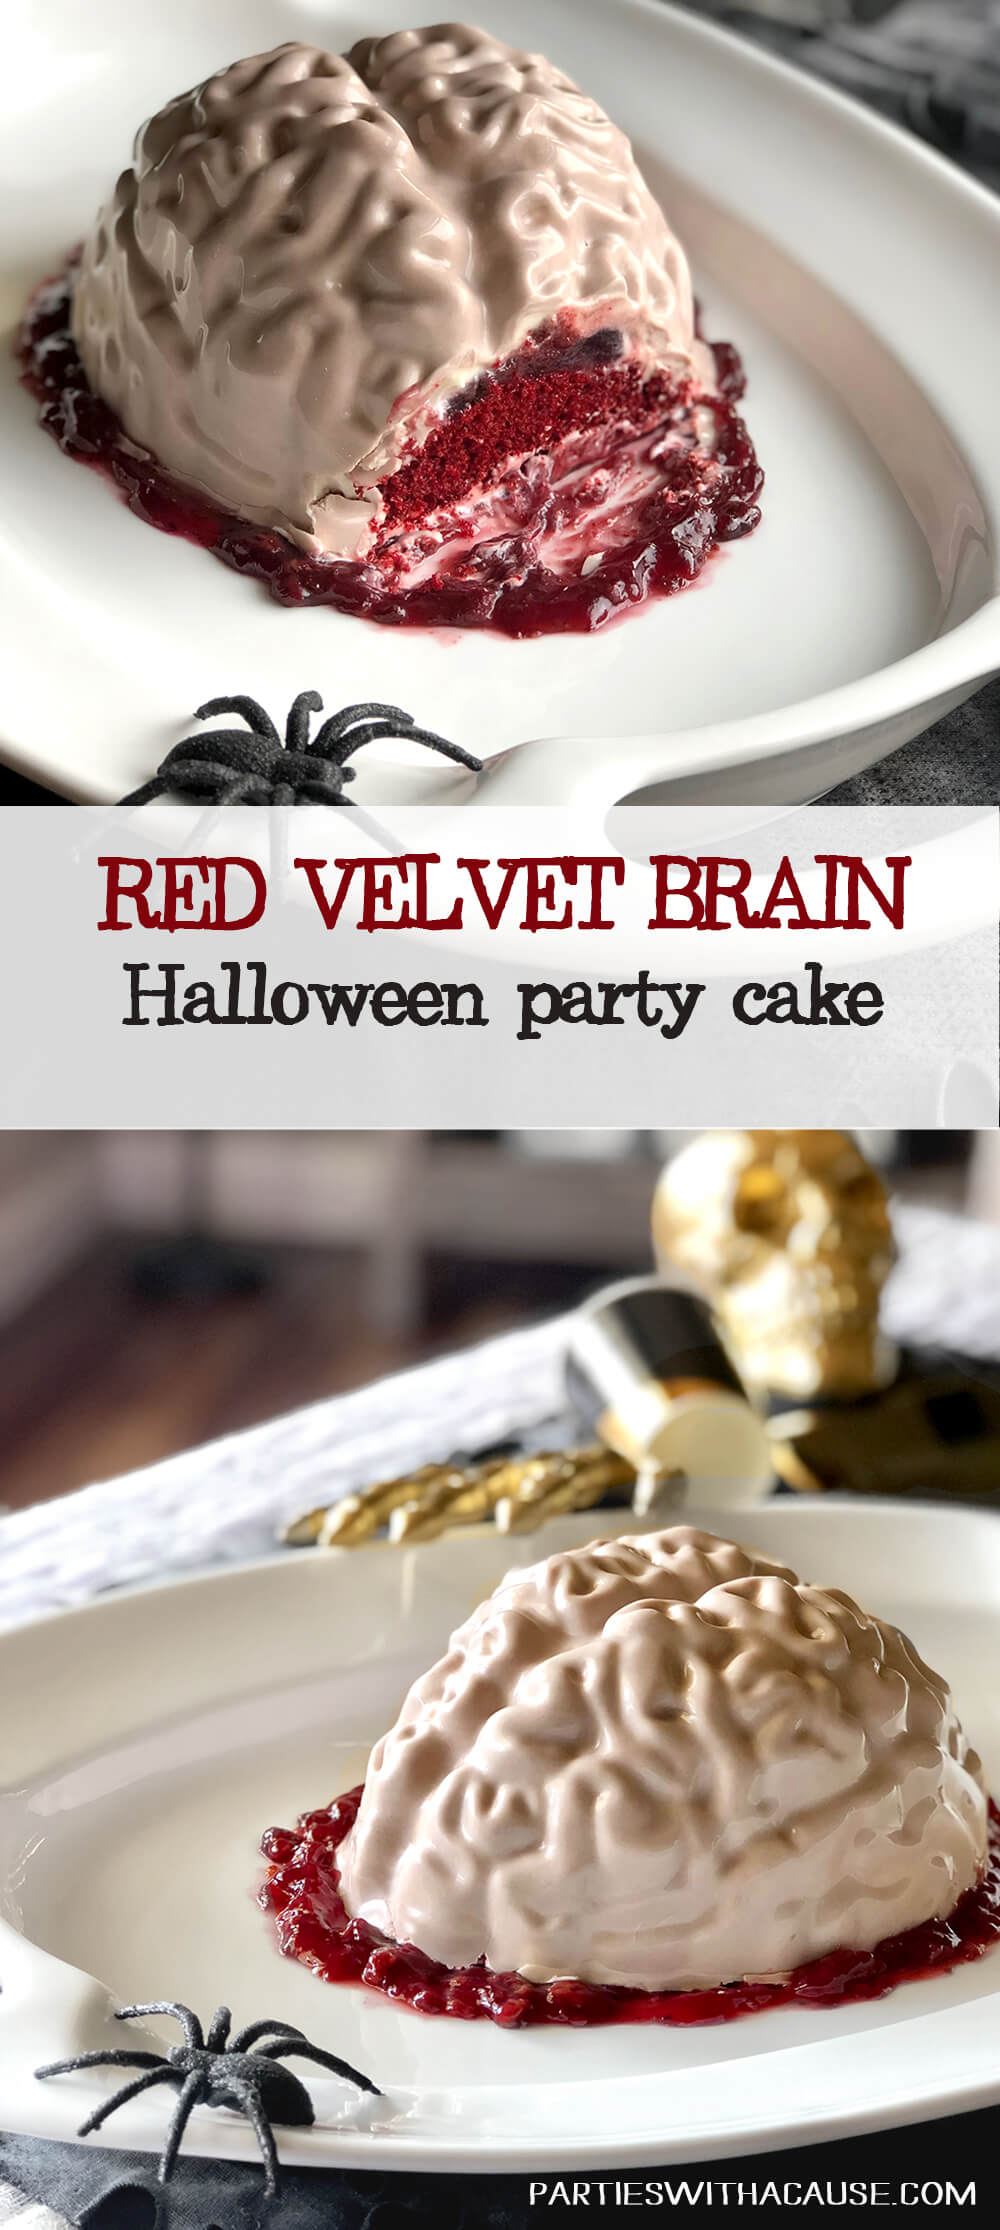 Red velvet brain cake for Halloween